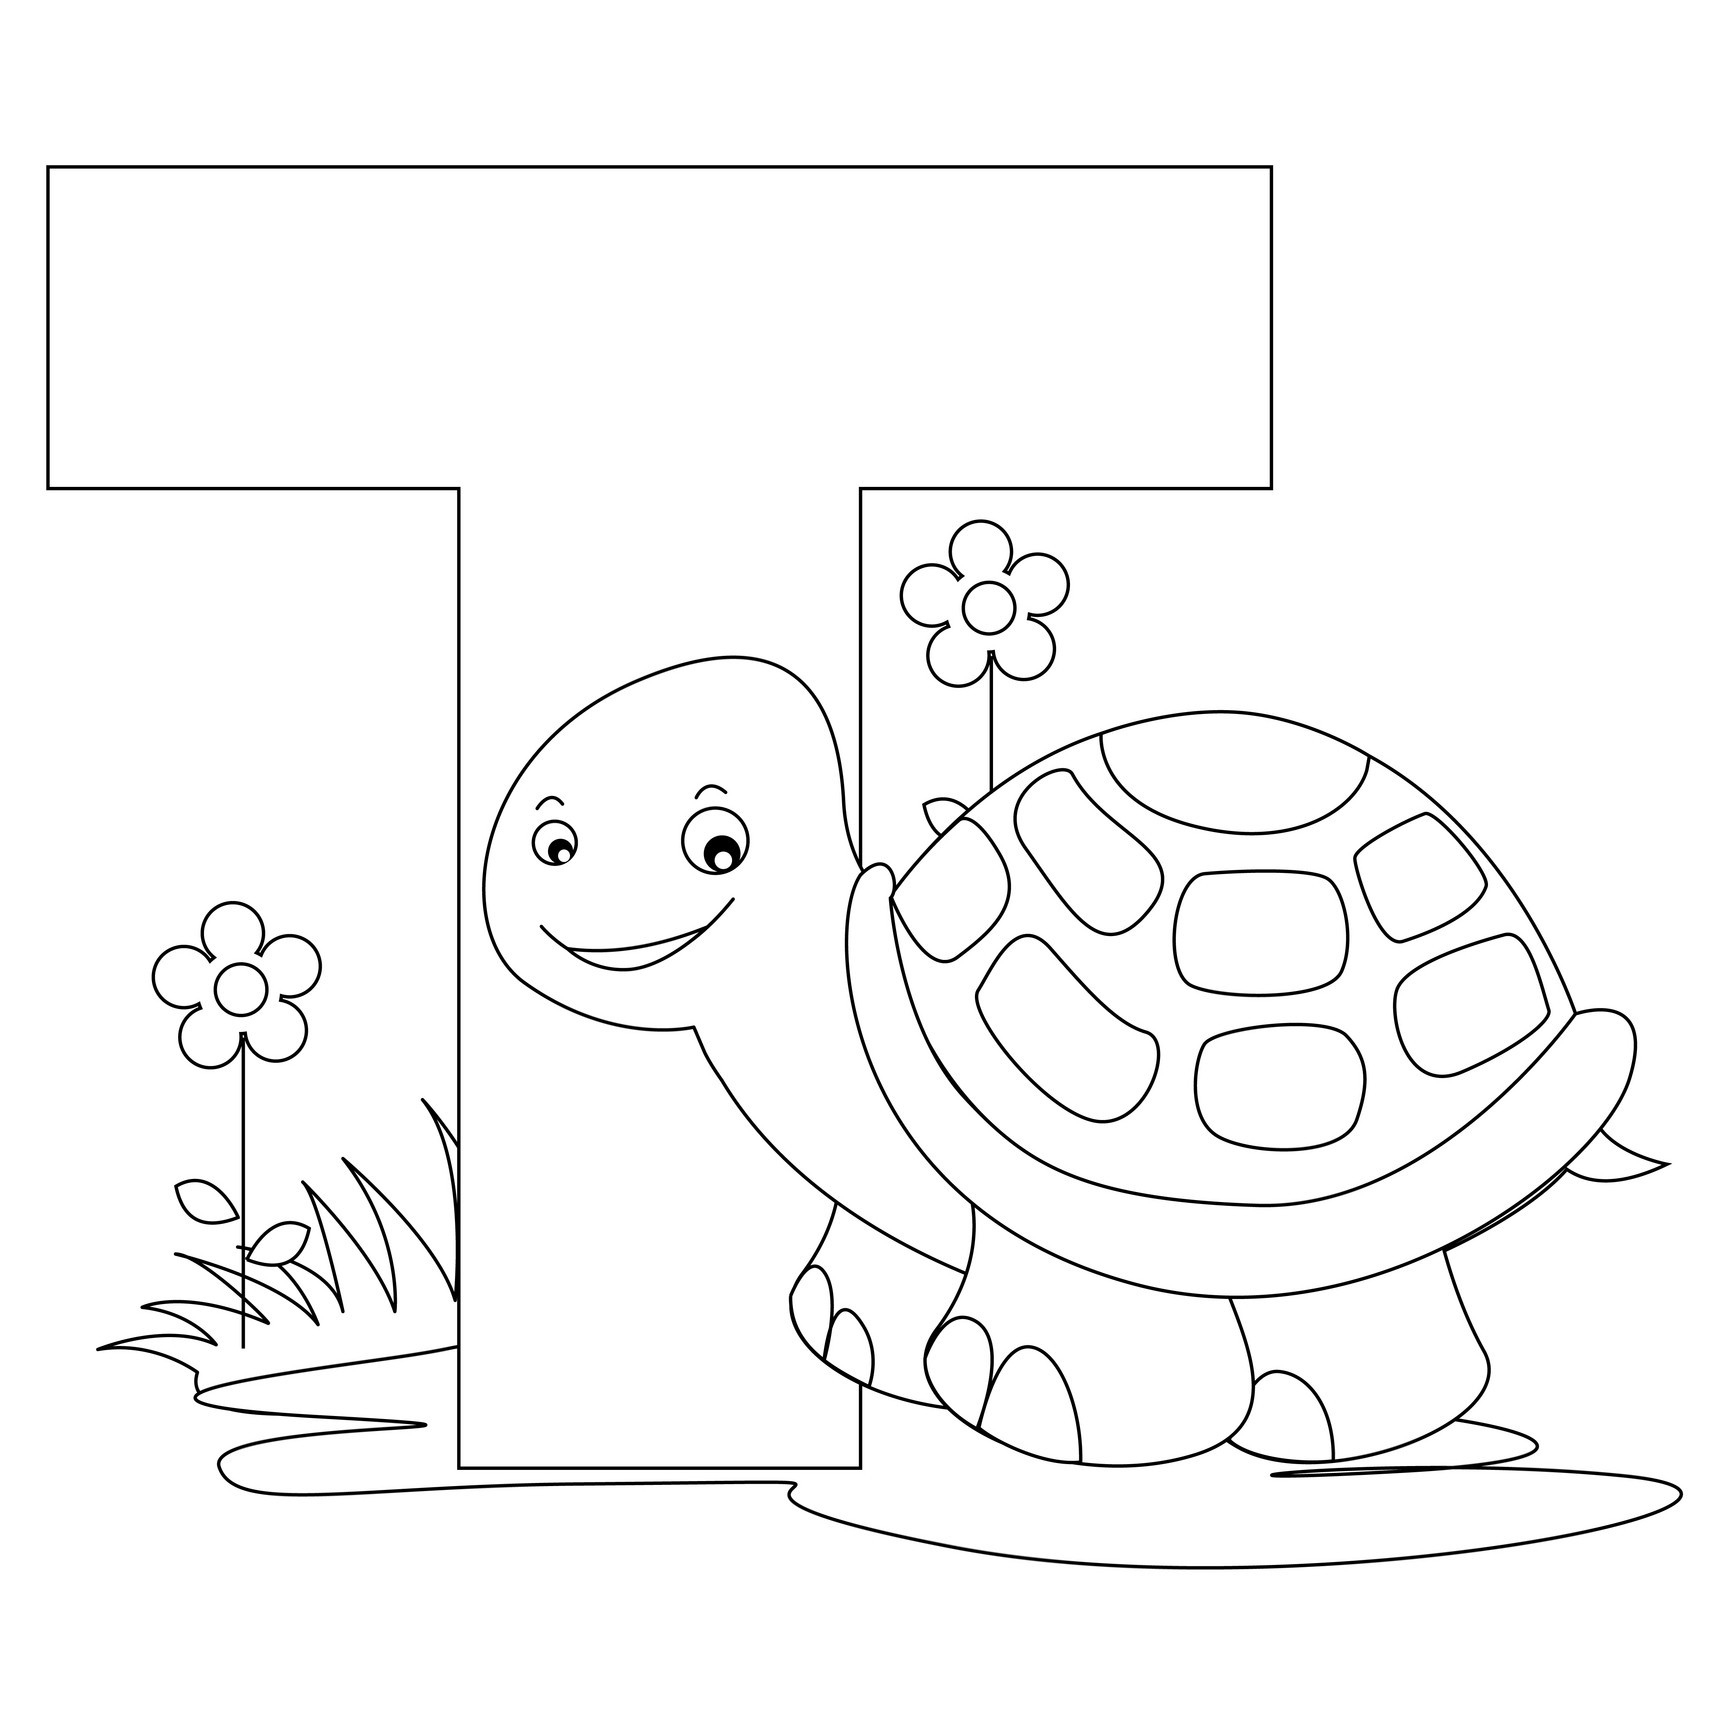 Free Printable Alphabet Coloring Pages Kids on Letter O Coloring Pages